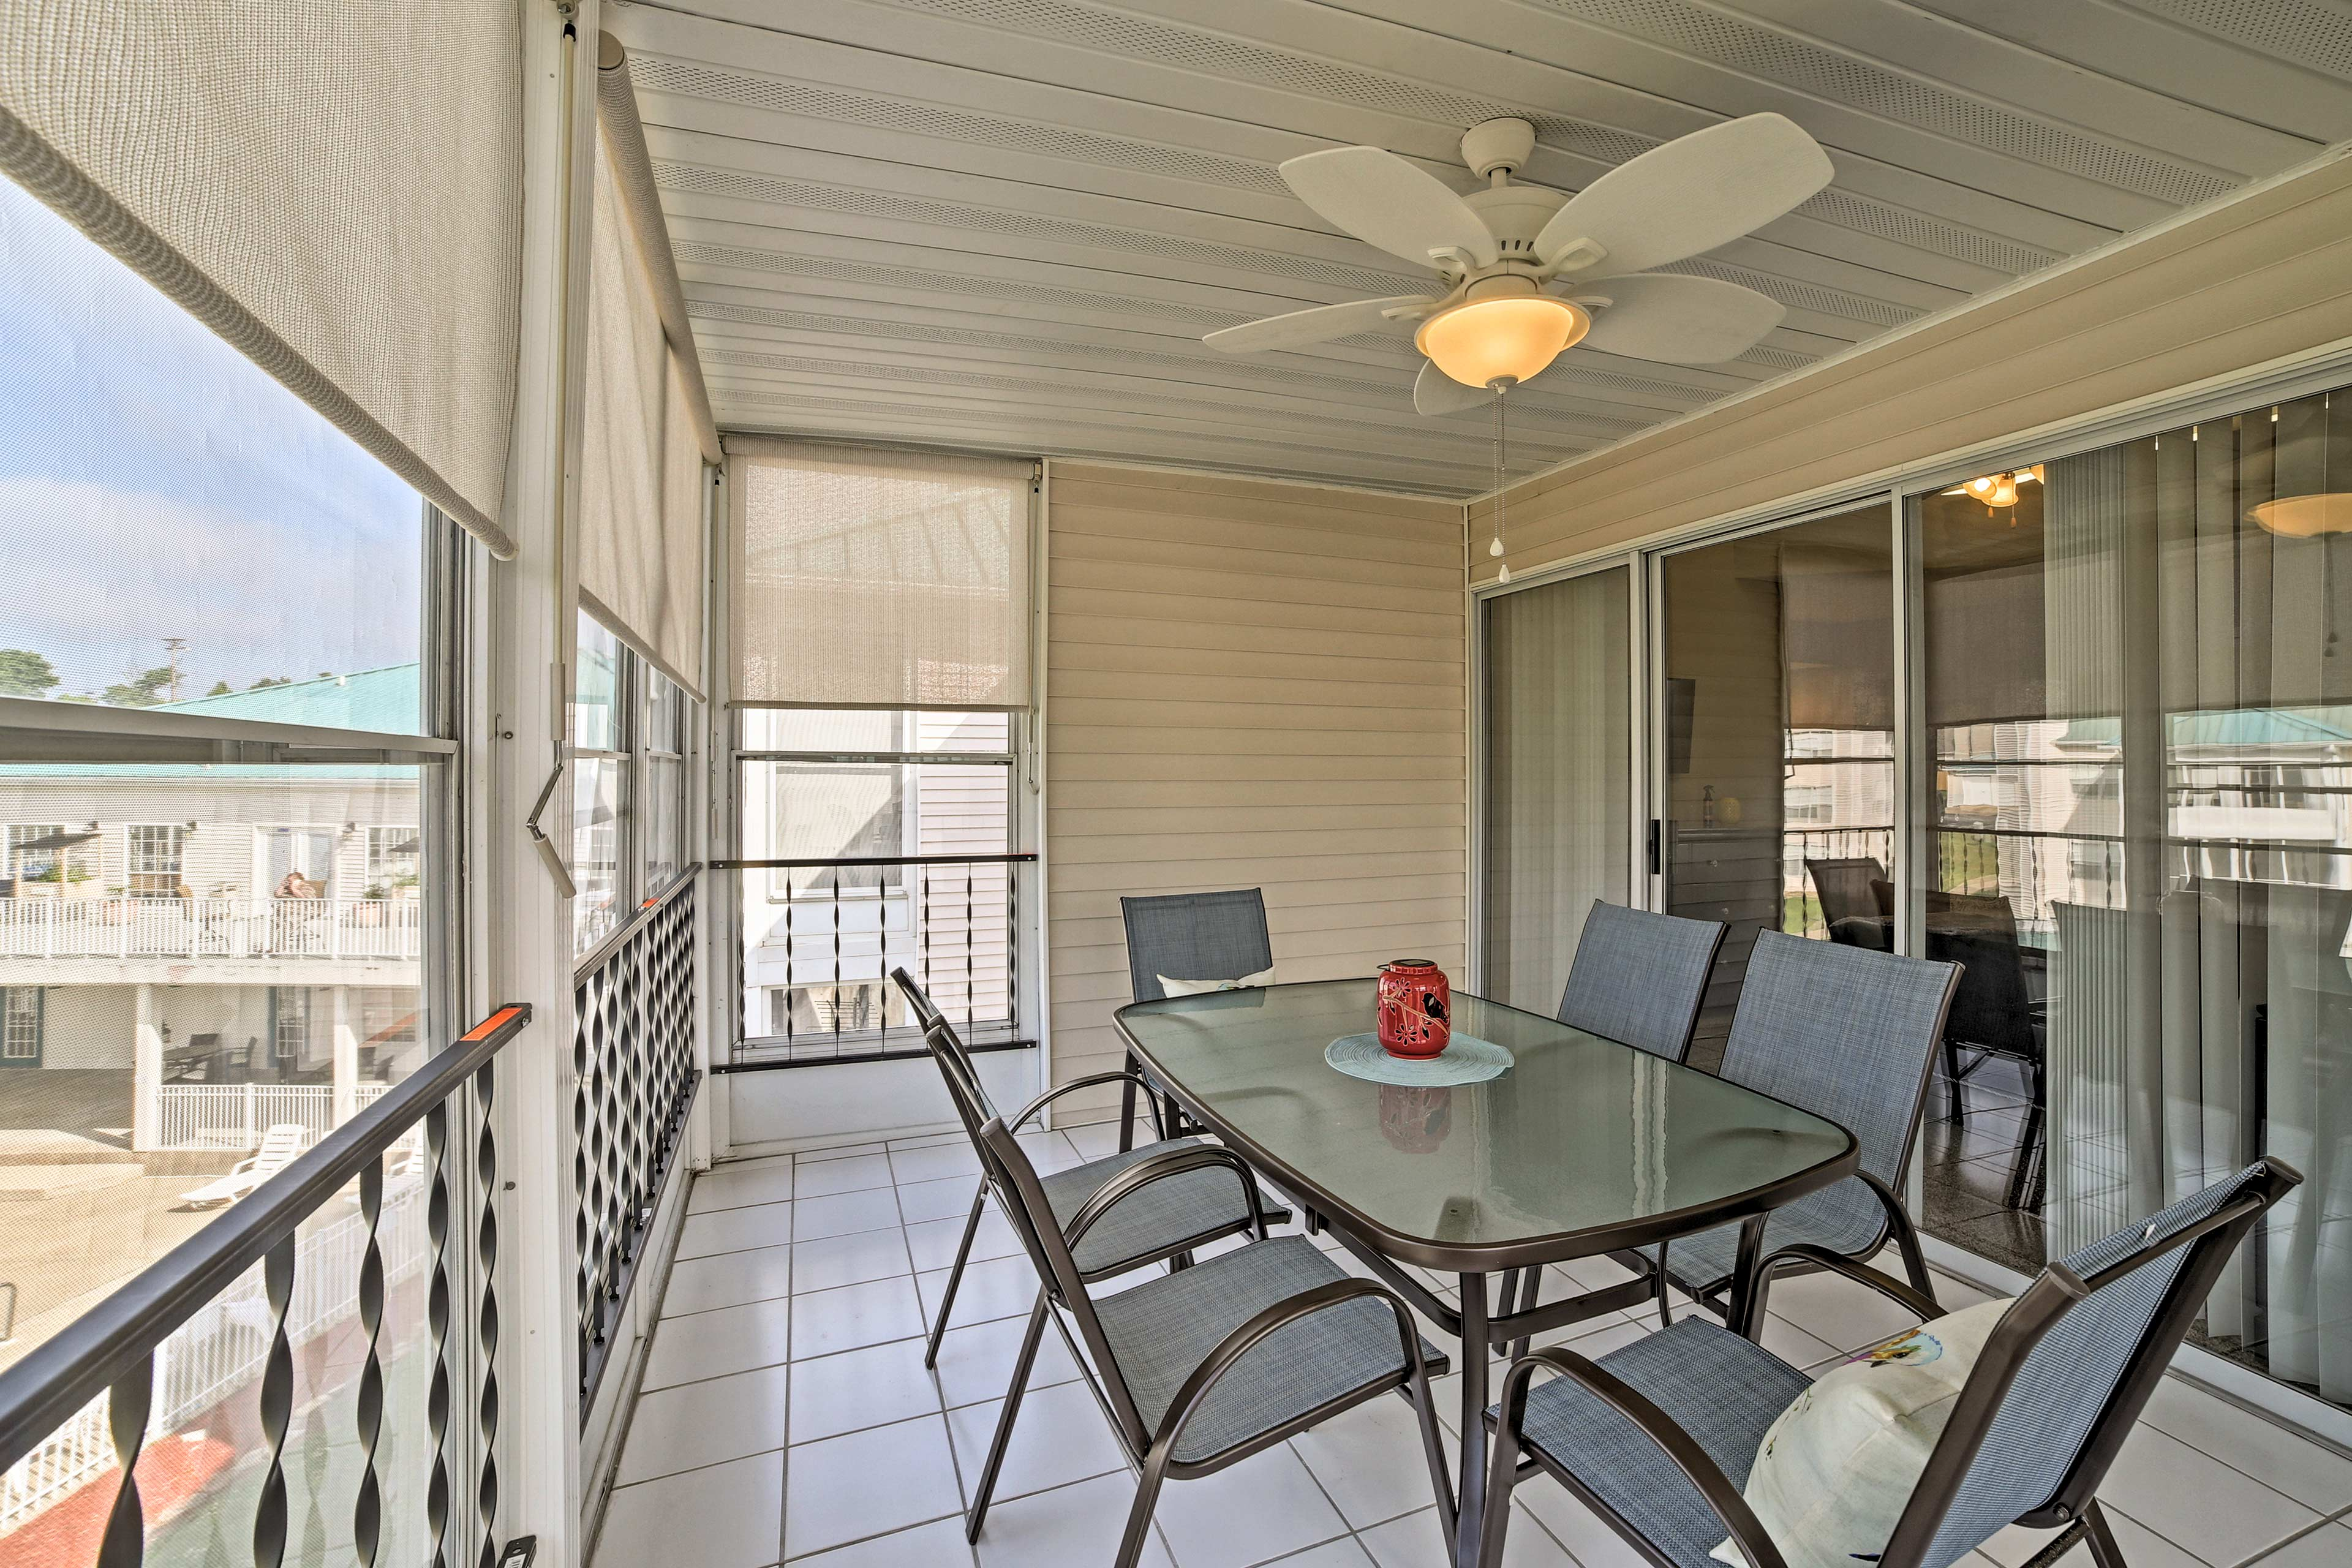 The sunroom is a great place to enjoy fresh air.